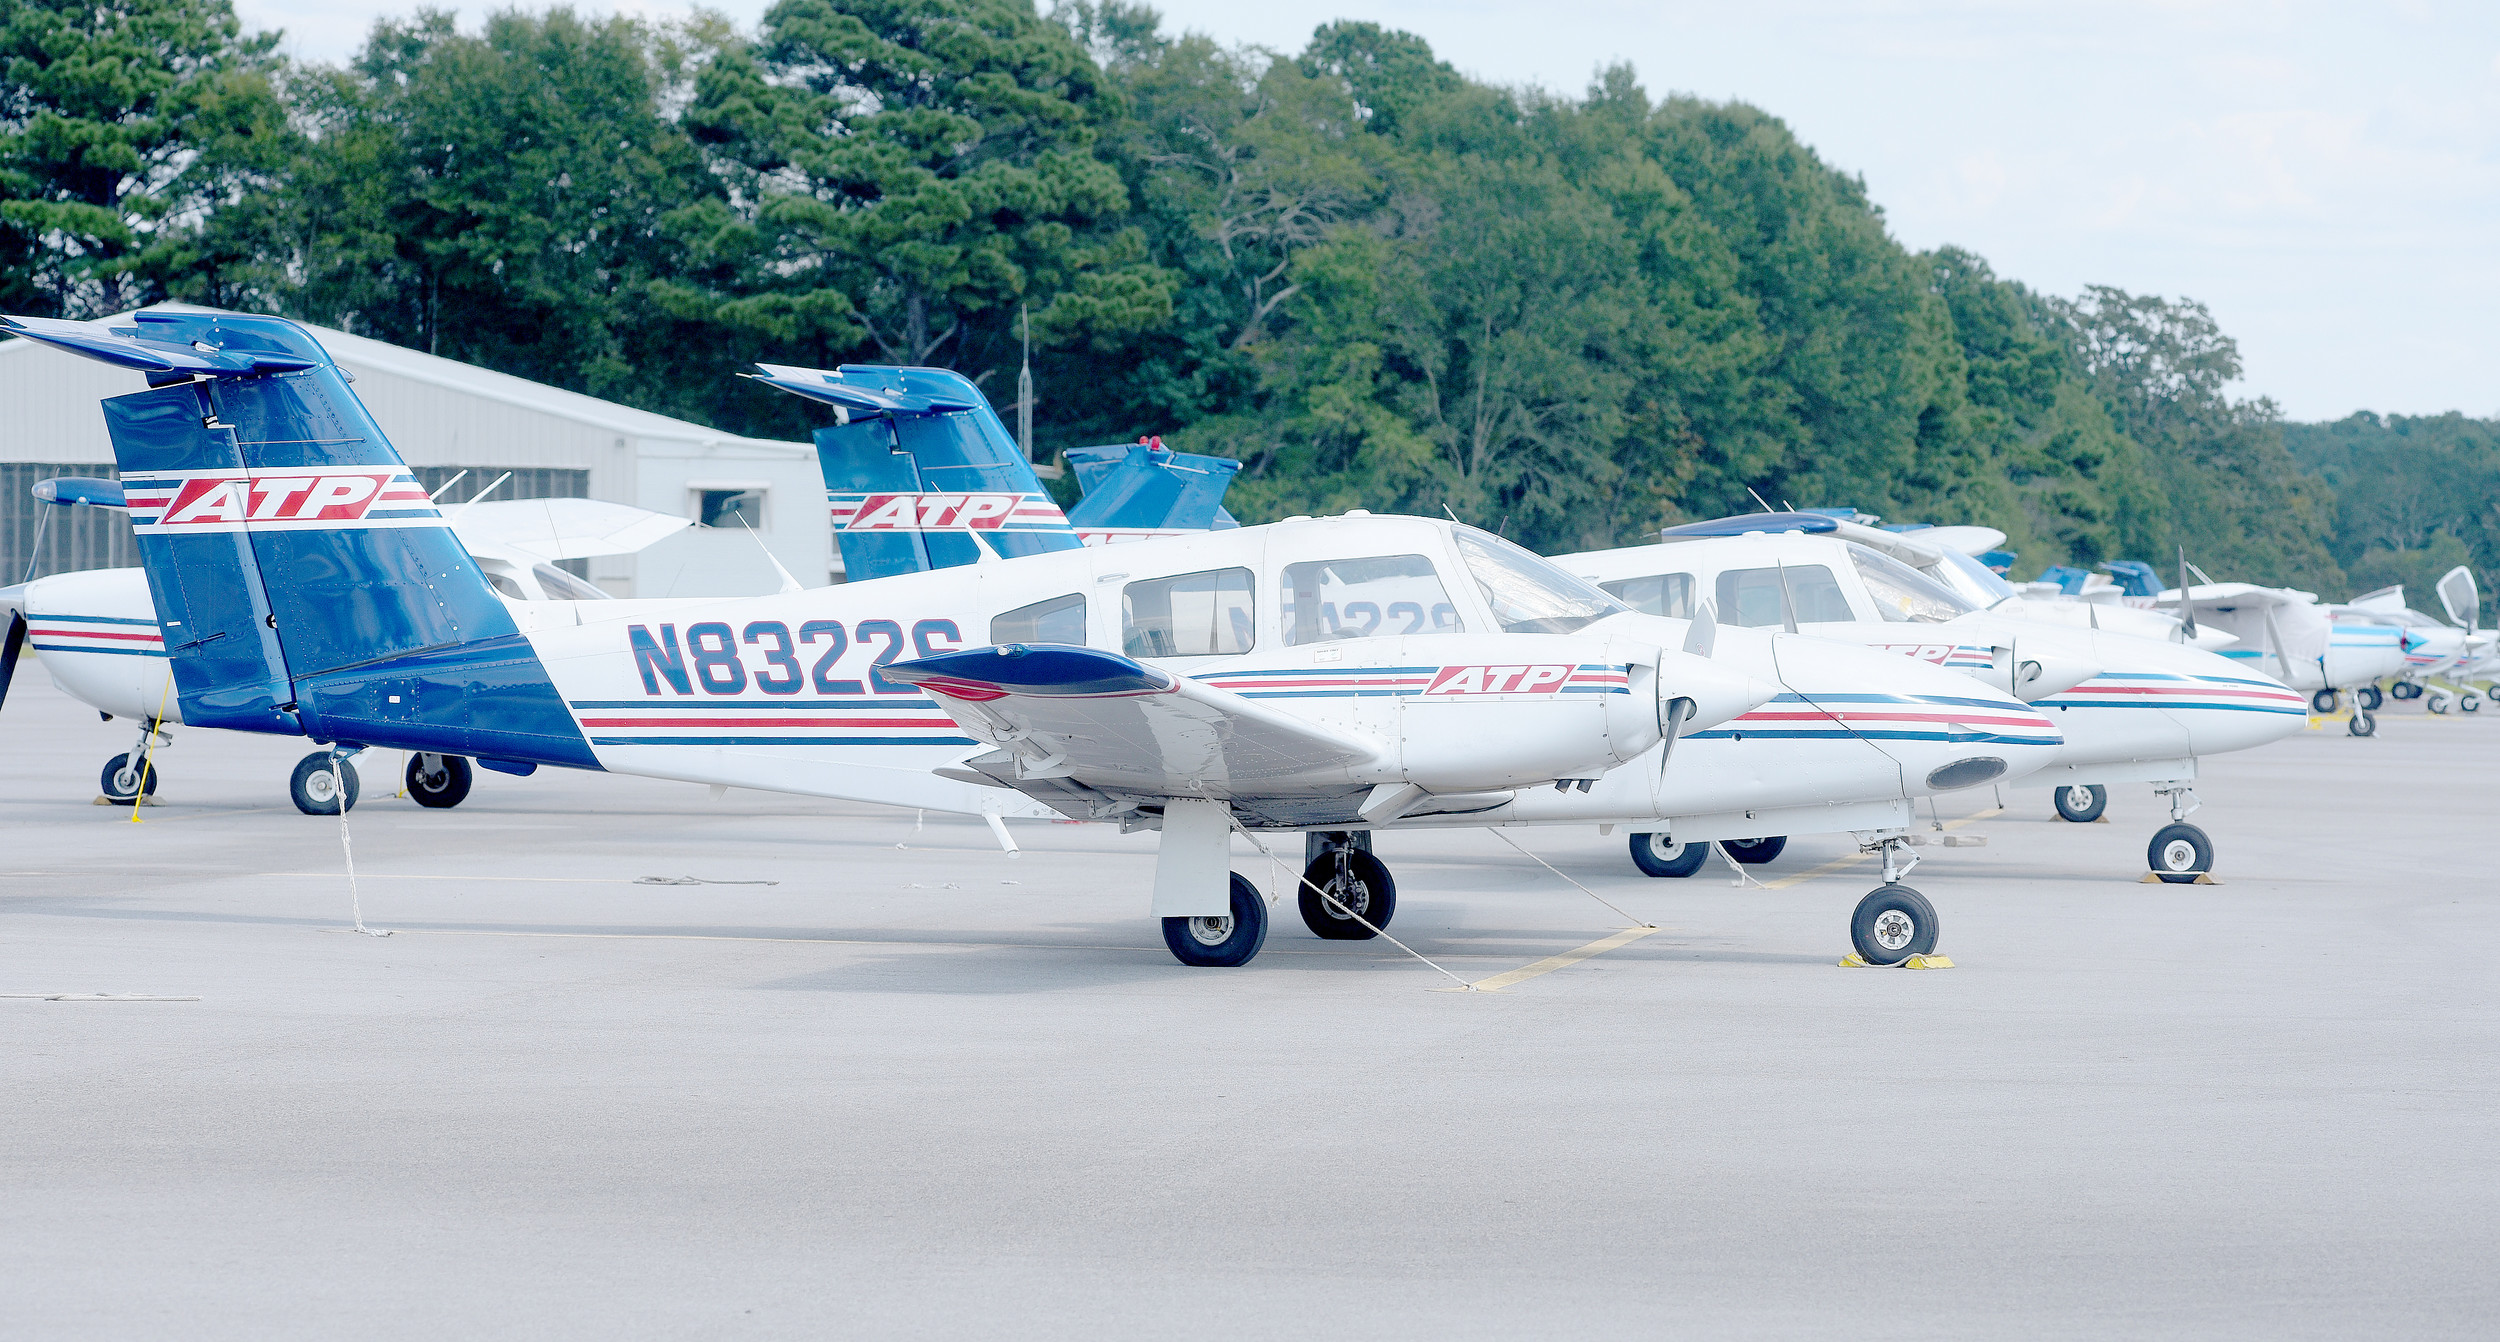 A number of planes from Jacksonville, Fla.-based ATP Flight School, which provides training and certification for pilots, are being kept at Bevill Field at the Walker County Airport to provide refuge from Hurricane Irma. Daily Mountain Eagle - Ron Harris